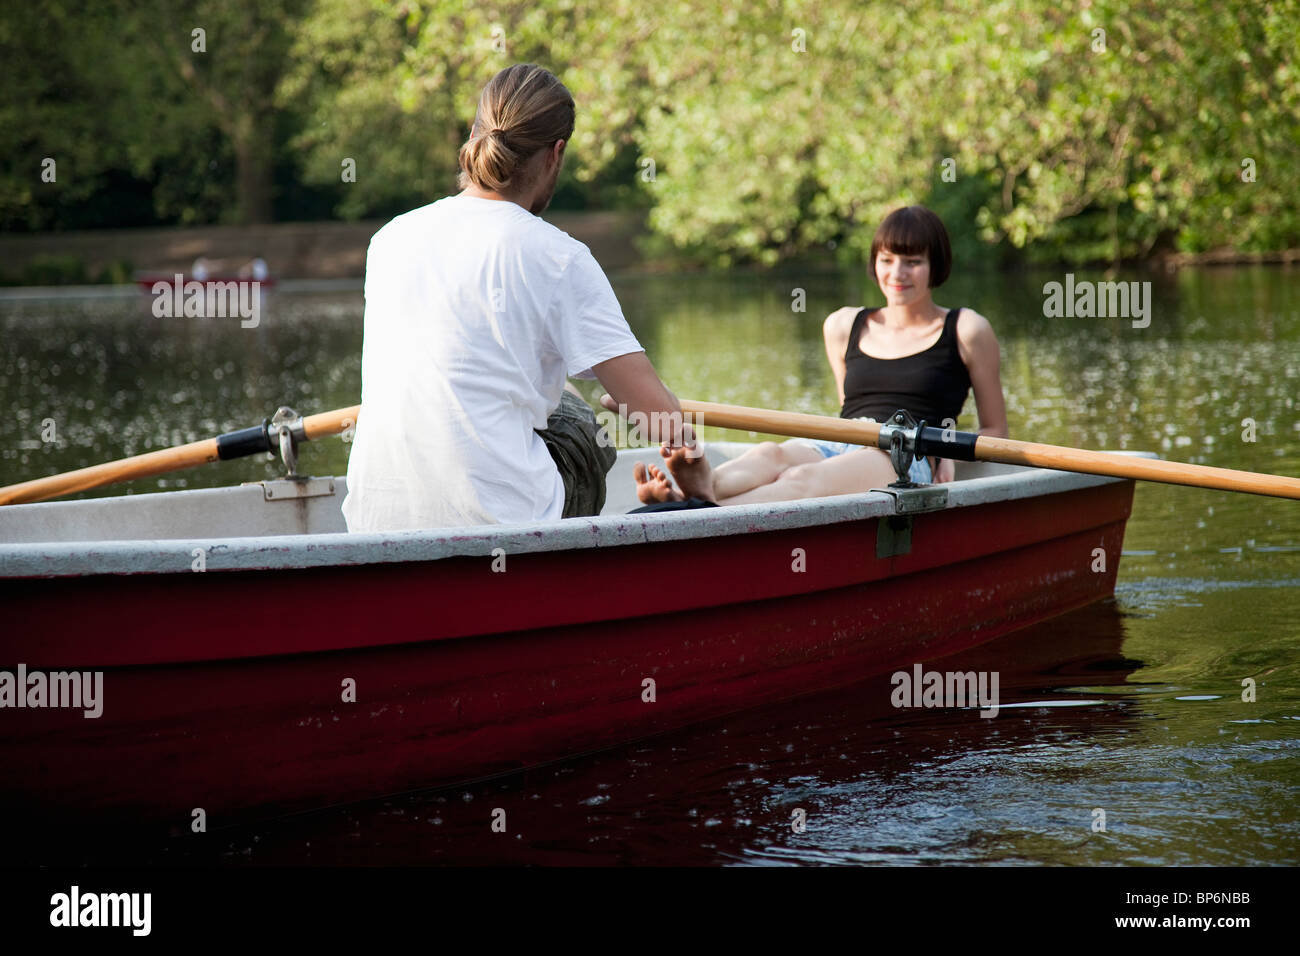 A young couple in a rowboat - Stock Image